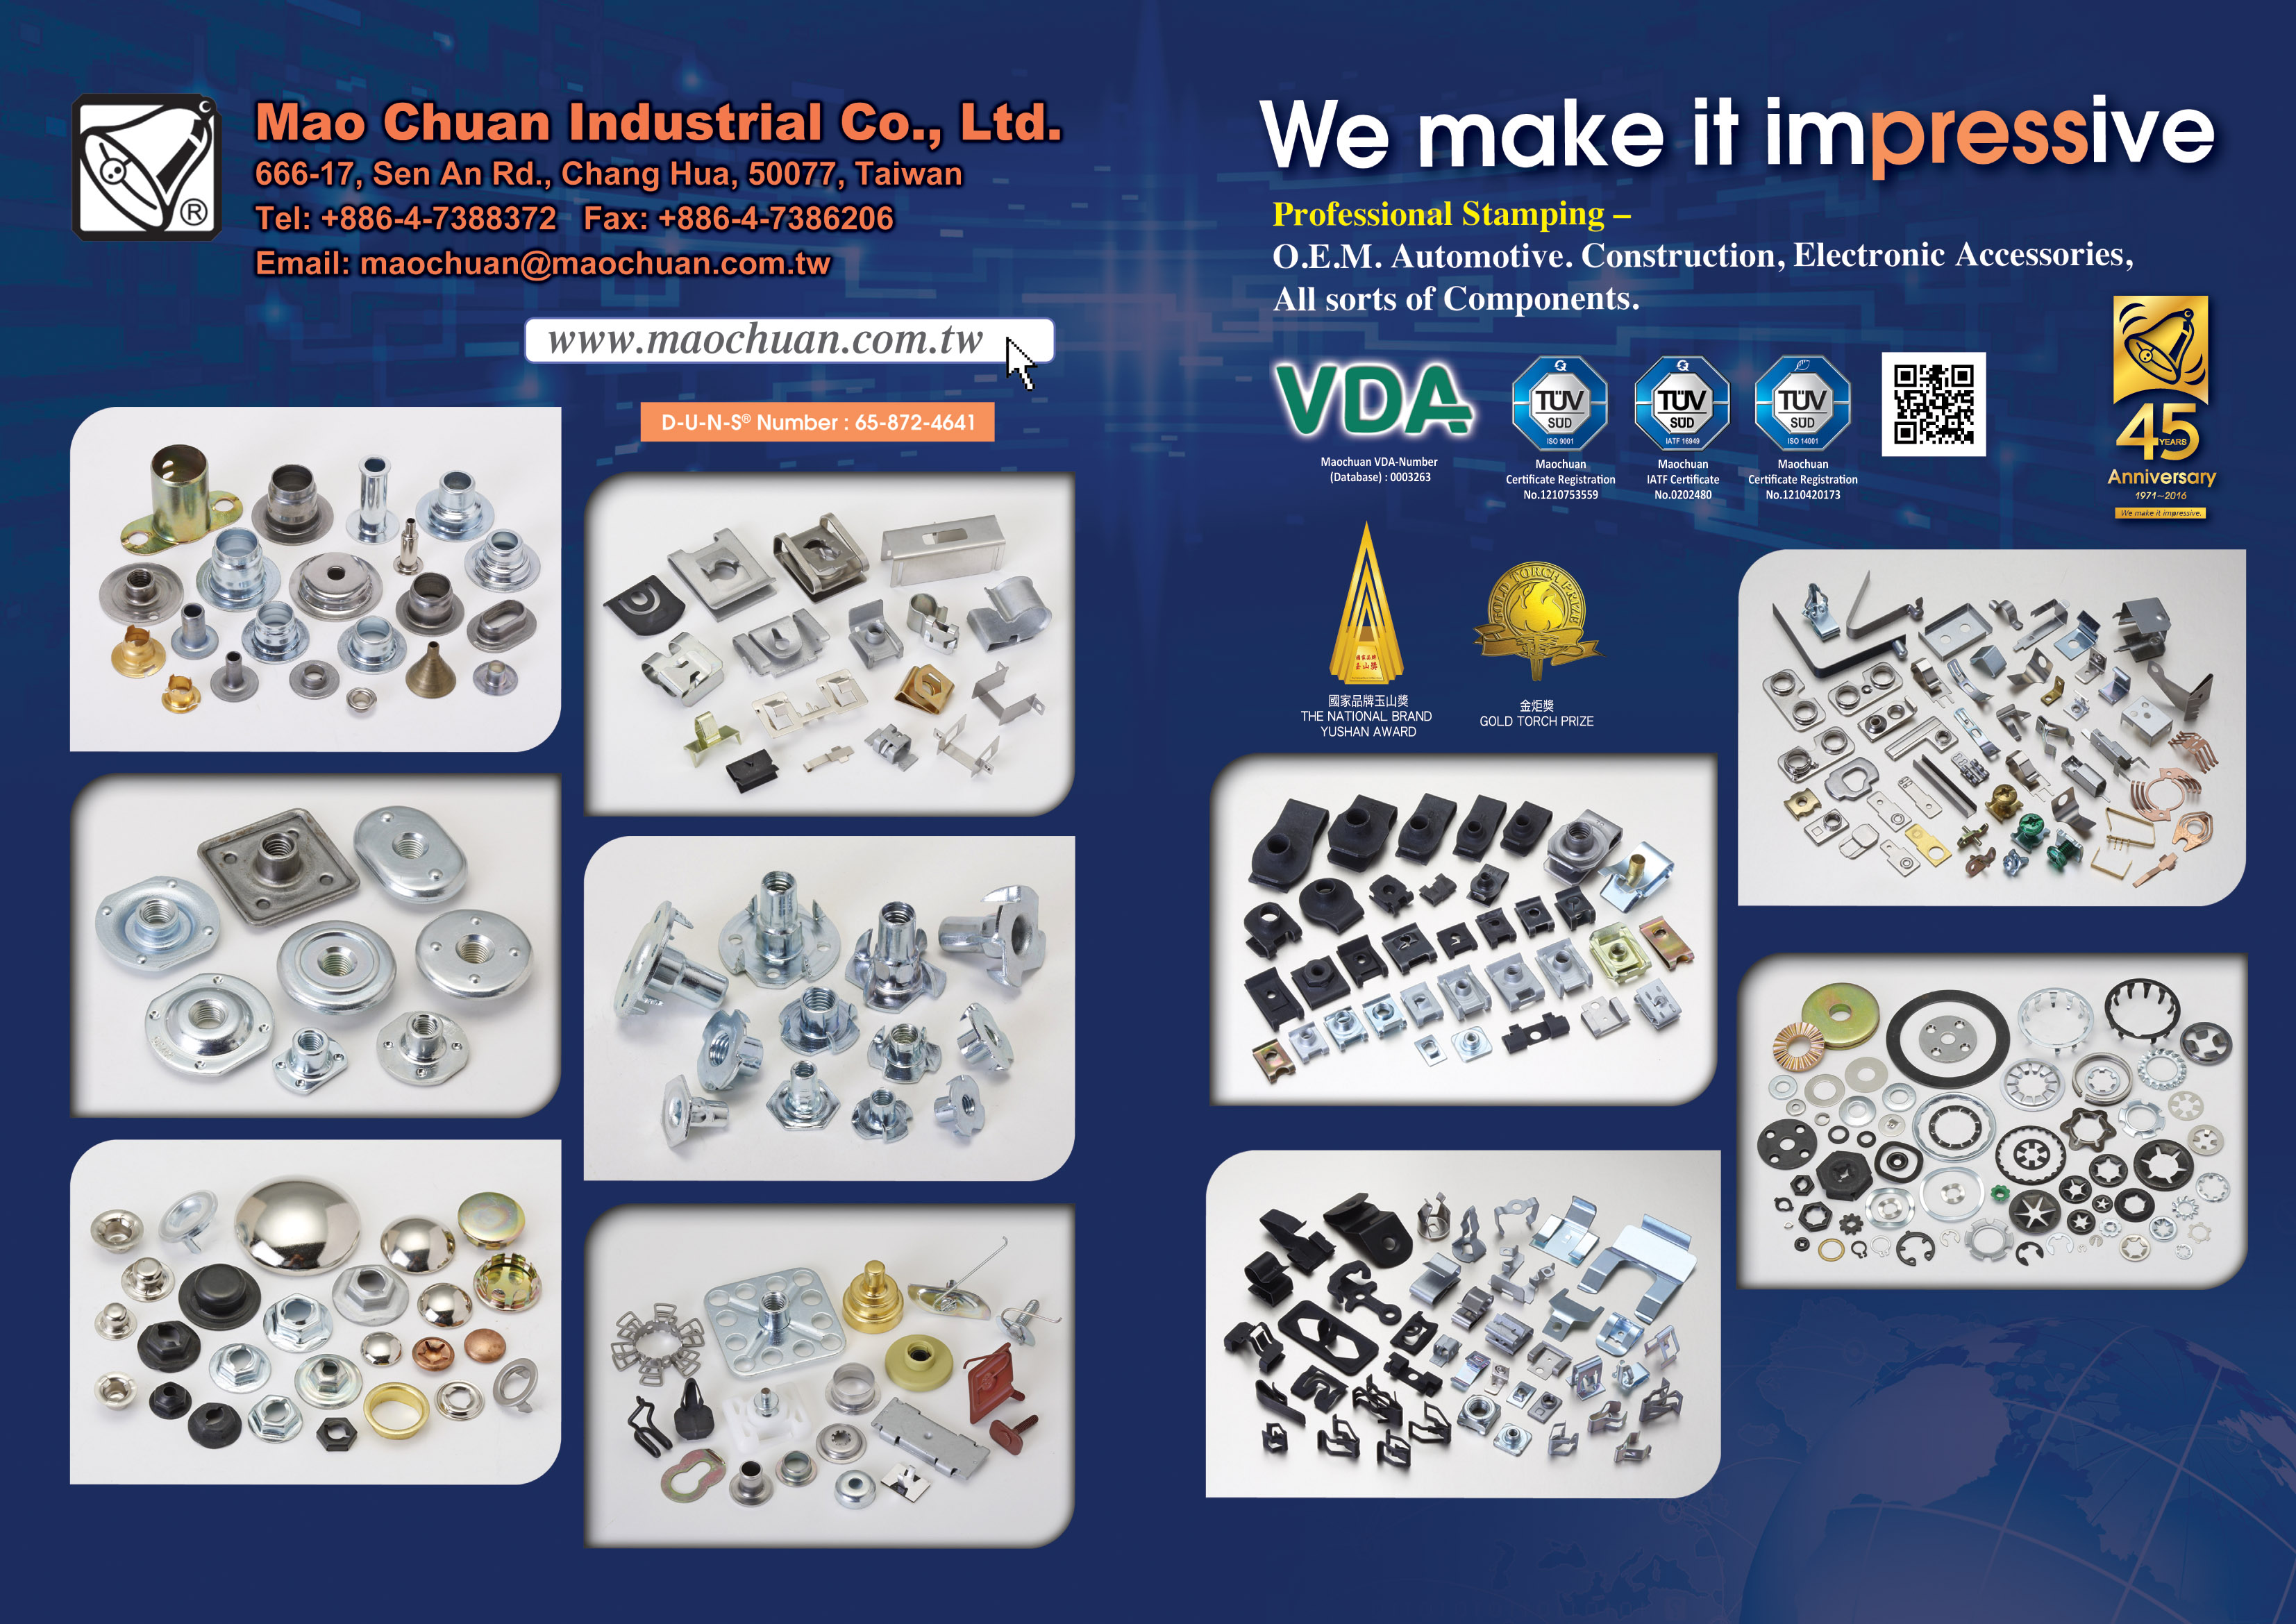 MAO CHUAN INDUSTRIAL CO., LTD. Online Catalogues